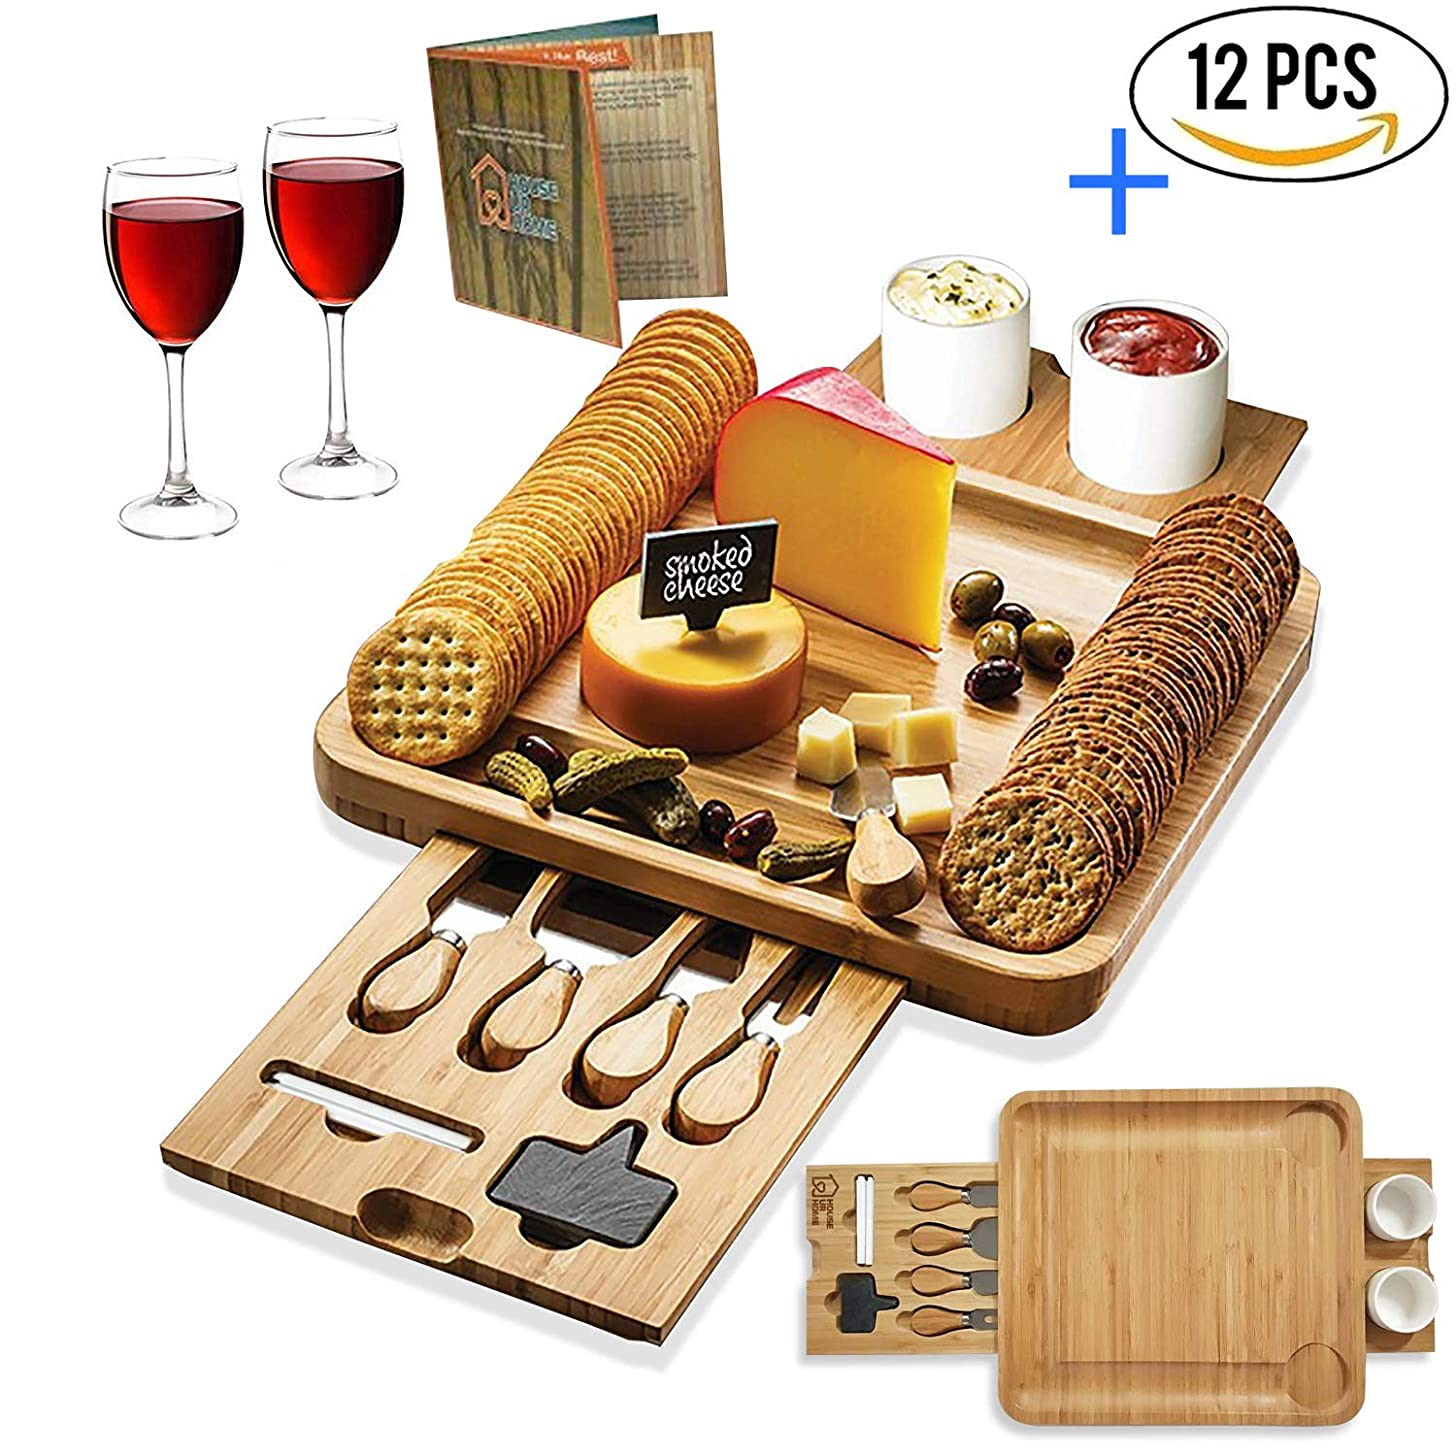 Bamboo Cheese Board Wooden Two Ceramic Bowls Two Magnet Drawers Serving Platter Cutlery Server Knife Set and Slate Labels and Markers Gift Idea for Birthdays, Wedding Registry, Housewarming